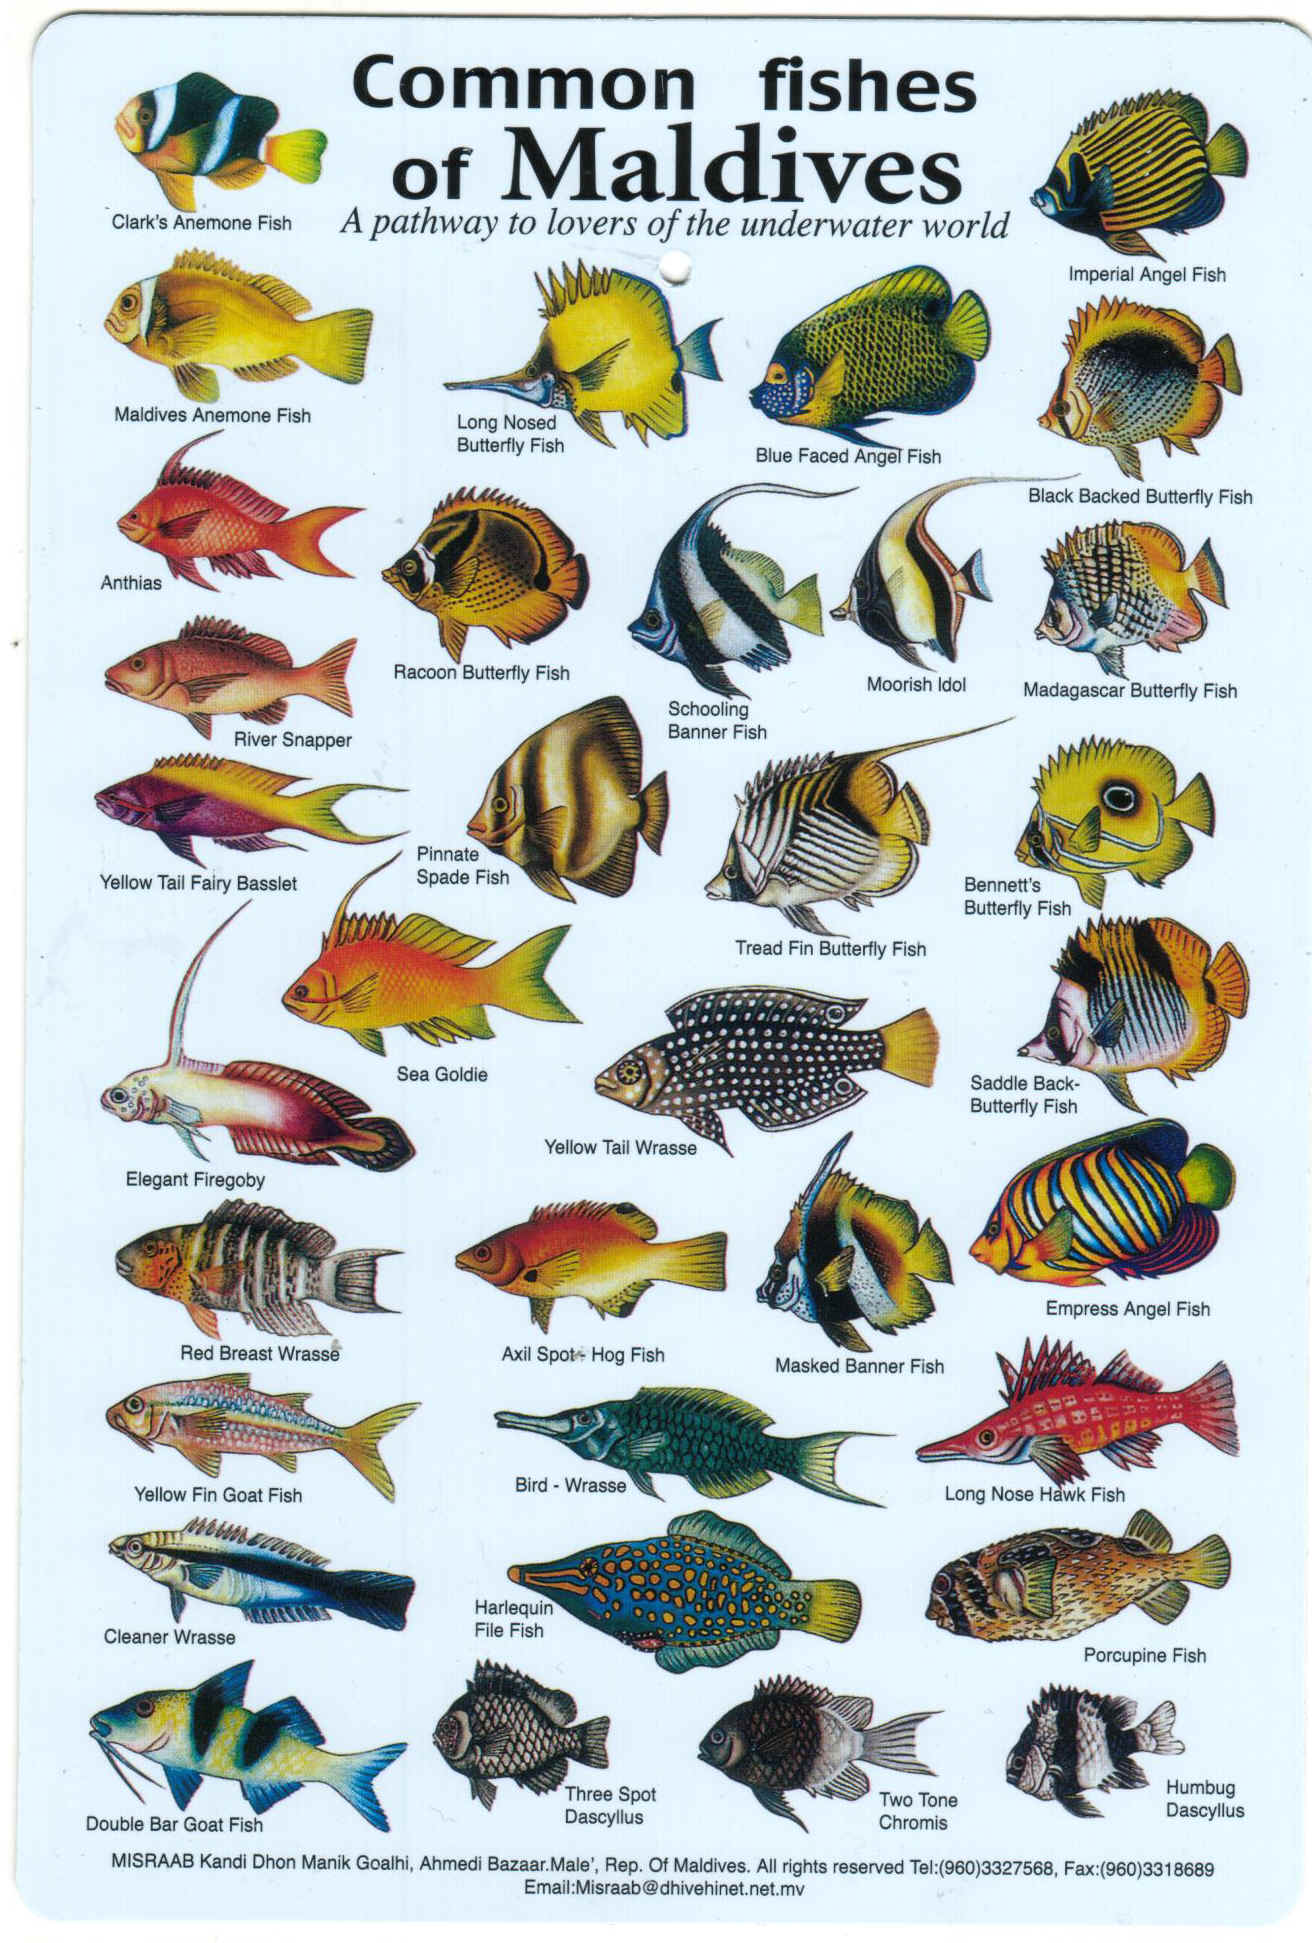 Floridas fishes marine organism illustration vintage retro kraft floridas fishes marine organism illustration vintage retro kraft coated poster decorative diy wall sticker art home decor gift in wall stickers from home sciox Choice Image